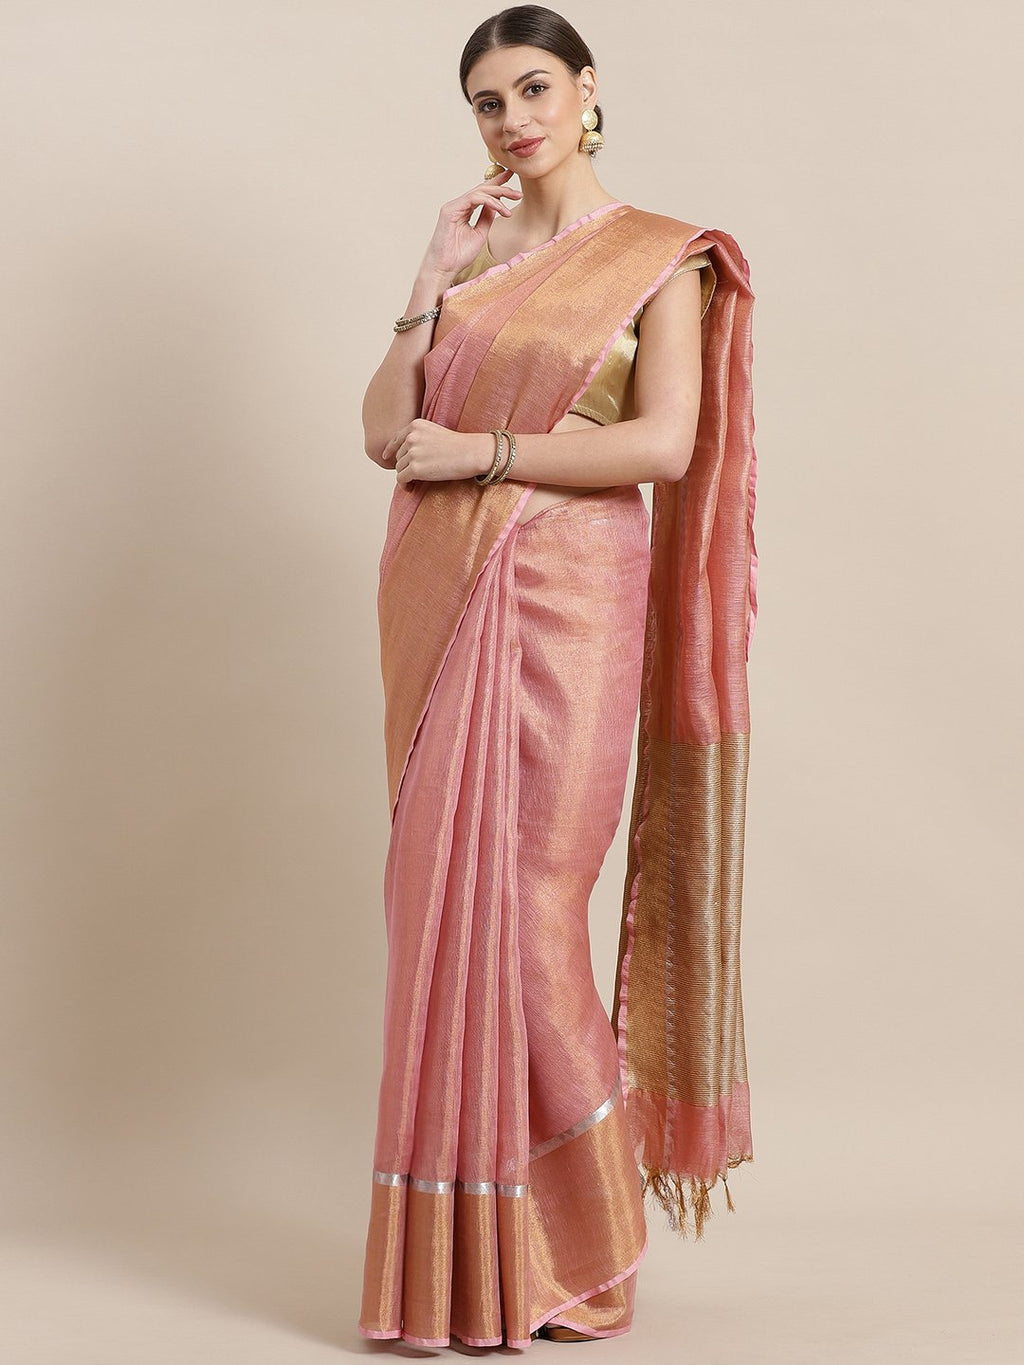 Pink Golden Dual Tone Tissue Woven Design Saree-Saree-Kalakari India-ALBGSA0028-Hand Woven, Sarees, Sustainable Fabrics, Tissue, Traditional Weave-[Linen,Ethnic,wear,Fashionista,Handloom,Handicraft,Indigo,blockprint,block,print,Cotton,Chanderi,Blue, latest,classy,party,bollywood,trendy,summer,style,traditional,formal,elegant,unique,style,hand,block,print, dabu,booti,gift,present,glamorous,affordable,collectible,Sari,Saree,printed, holi, Diwali, birthday, anniversary, sustainable, organic, scarf,